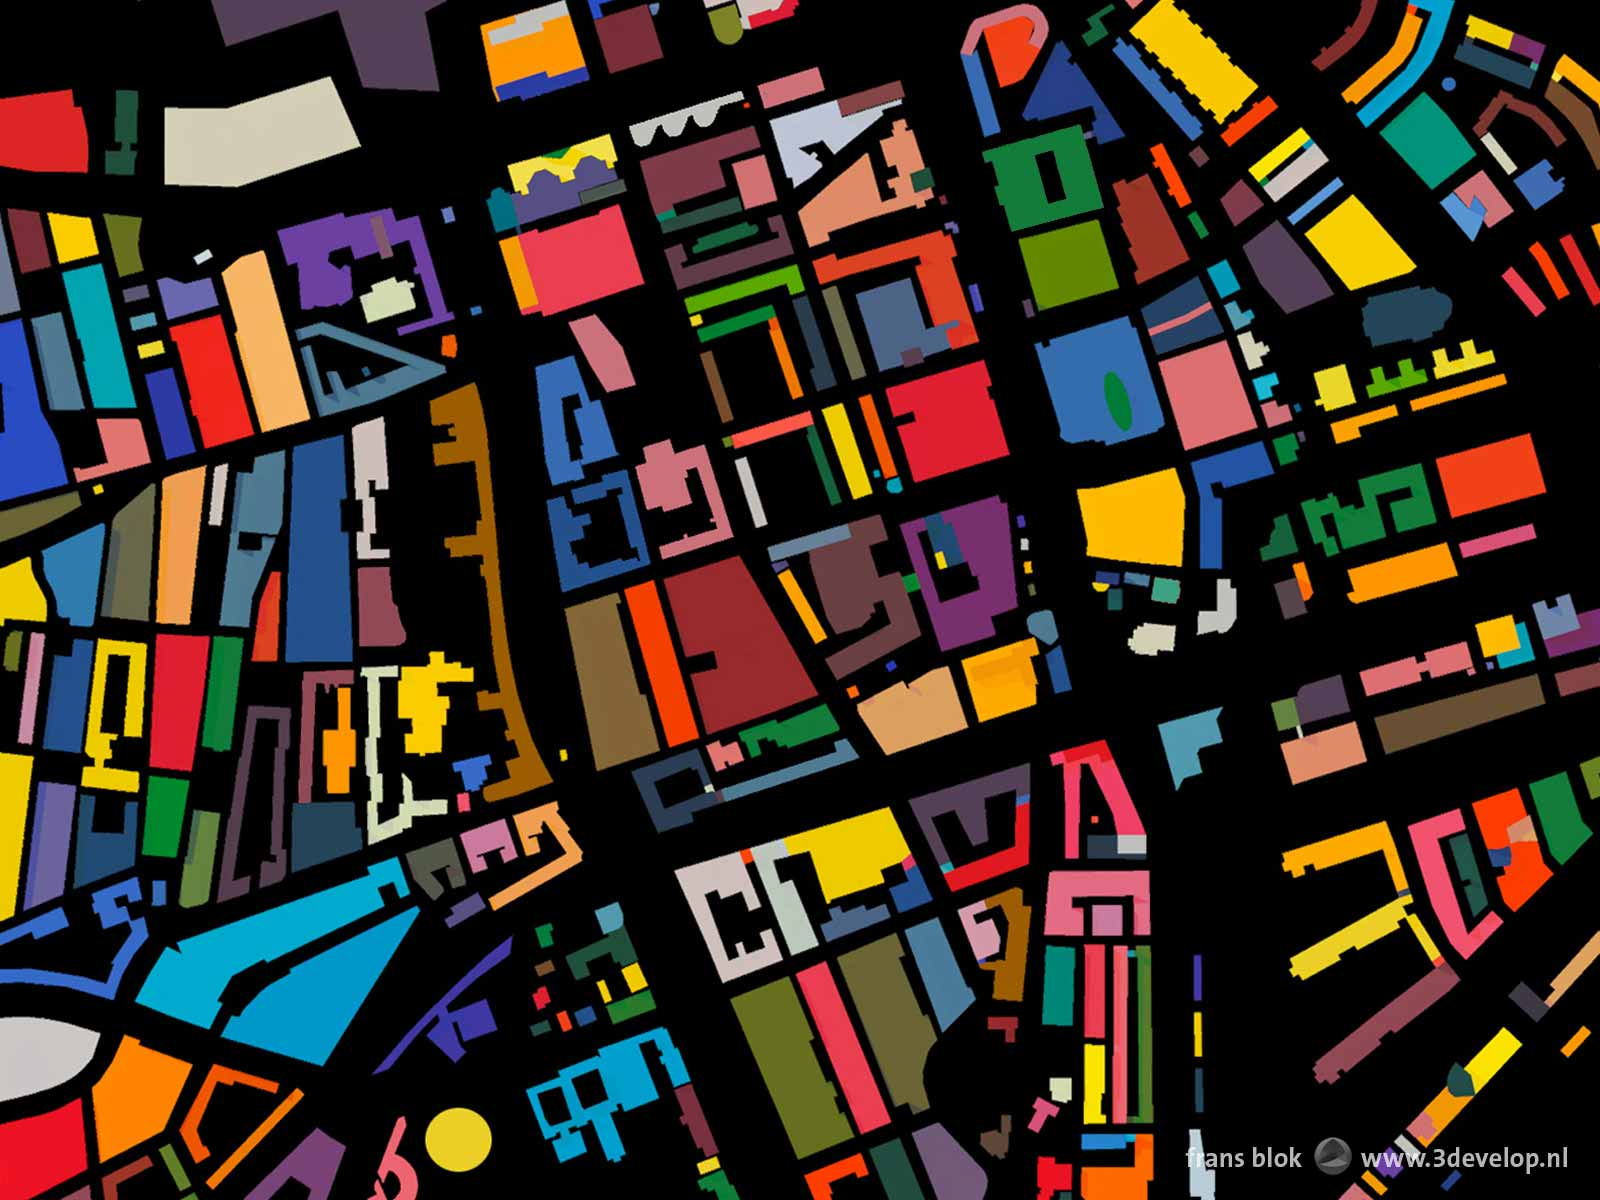 Detail of the Color Map of Rotterdam cropped at the city center with all city blocks drawn in a random color